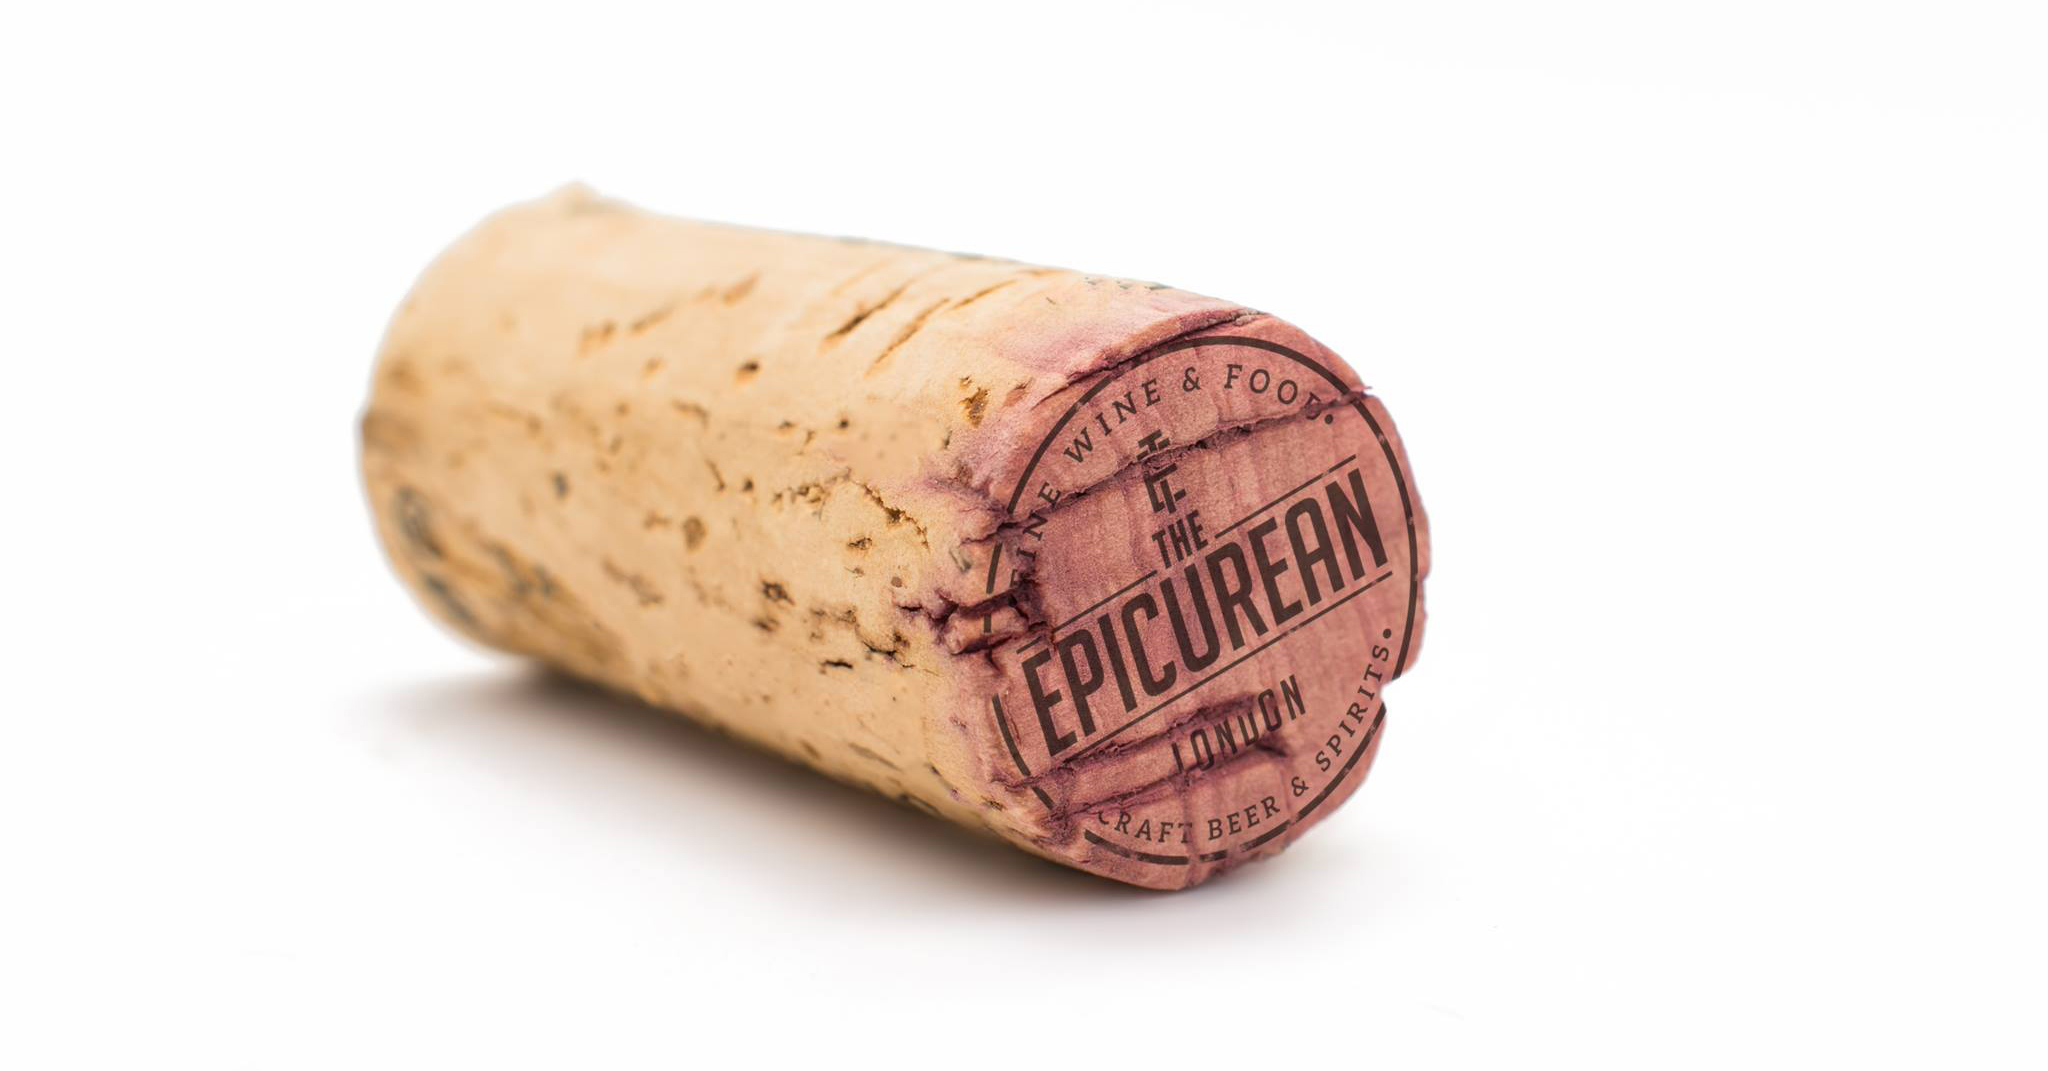 Join Carmelita at 'The Epicurean' event, London, this October!